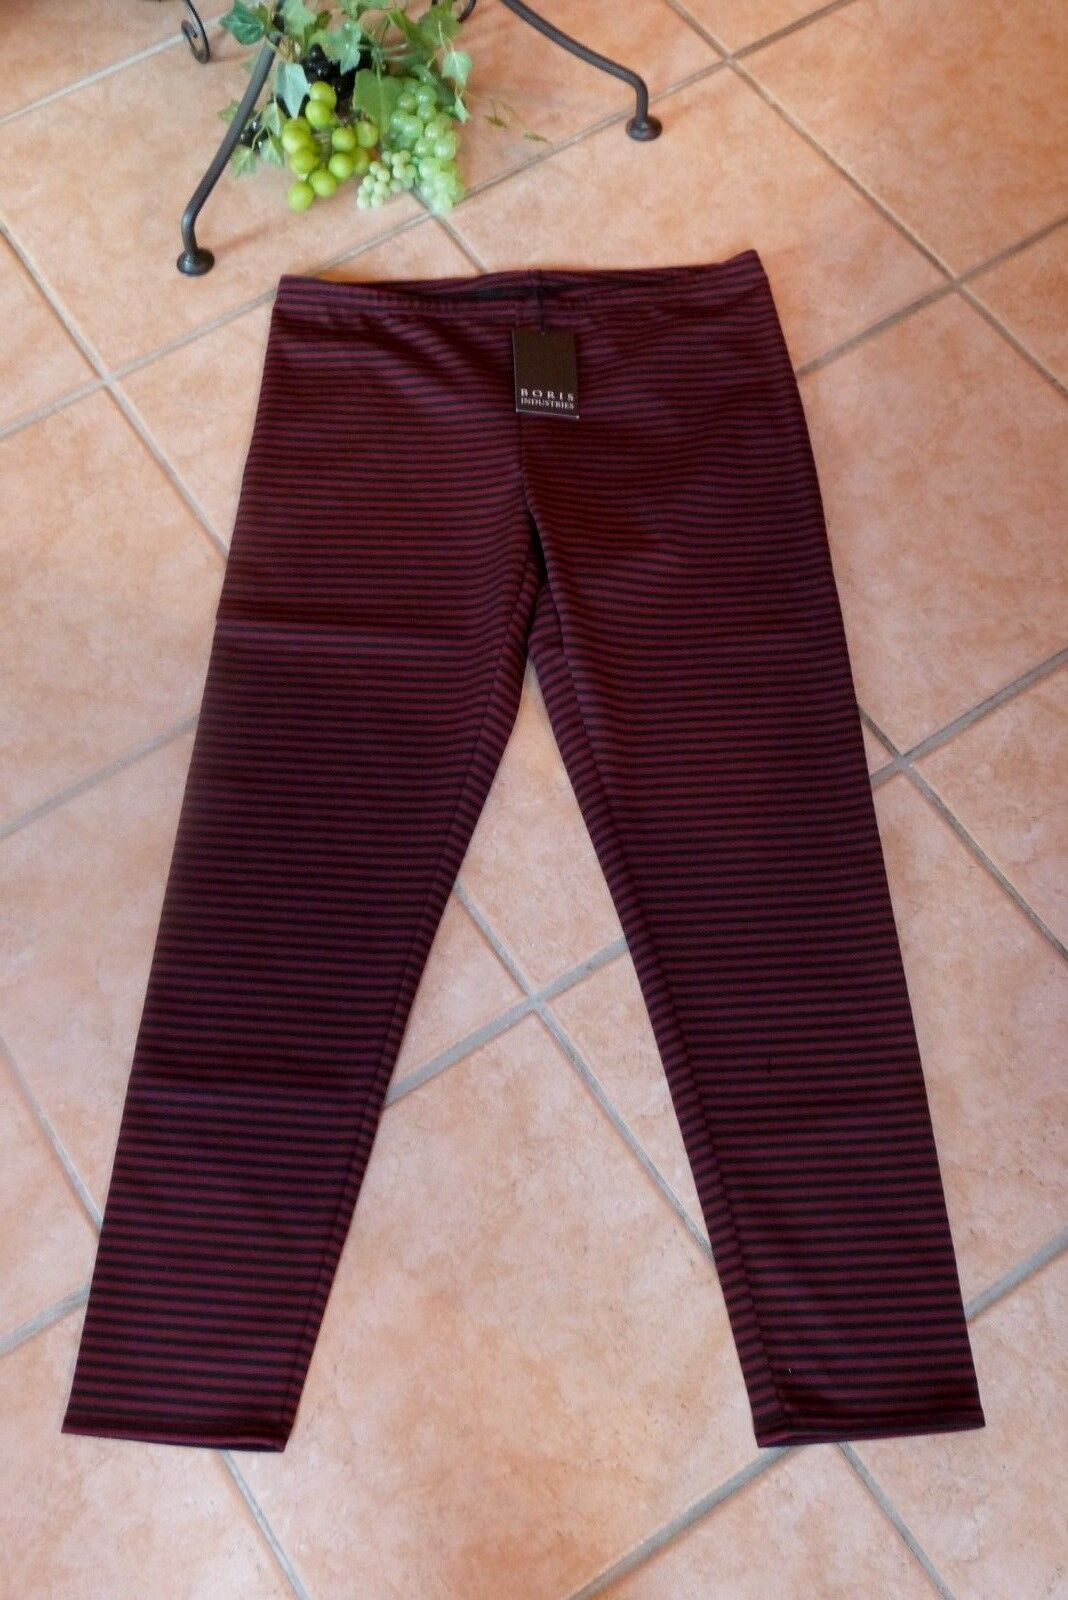 BORIS INDUSTRIES Leggings 40 42 (2) NEU bordeaux Streifen Double Face LAGENLOOK